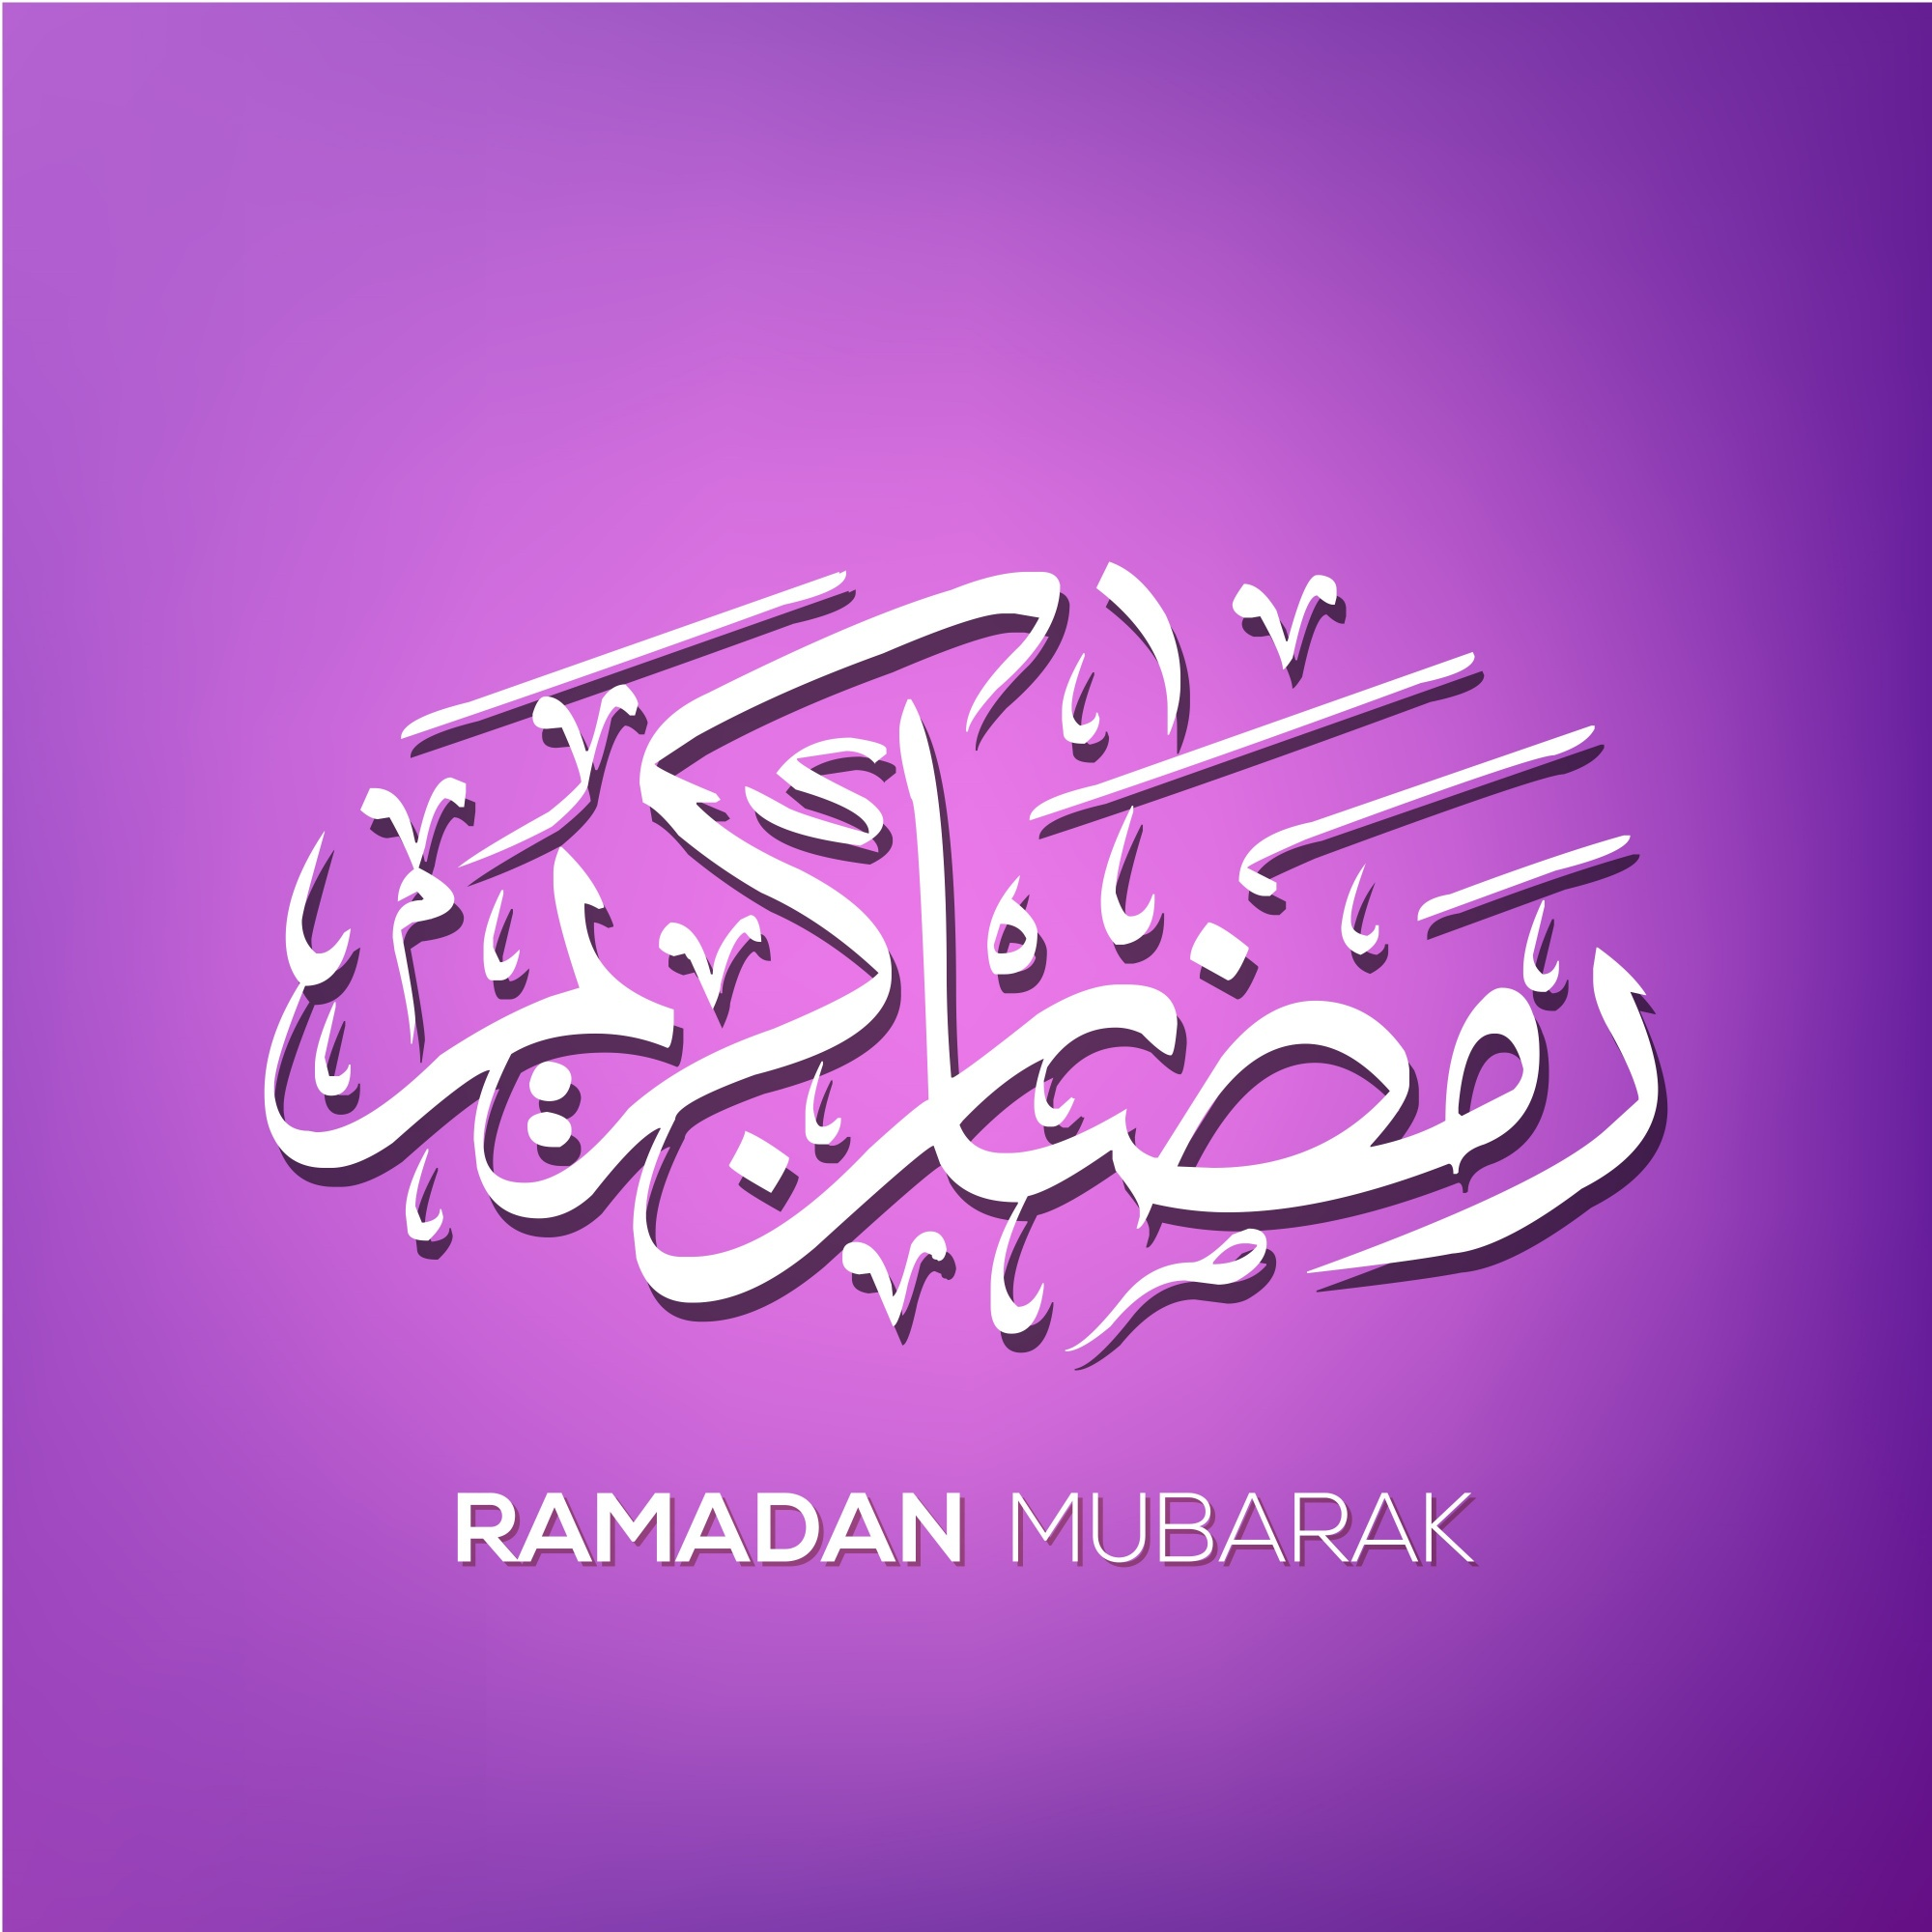 Purple ramadan kareem calligraphic illustration